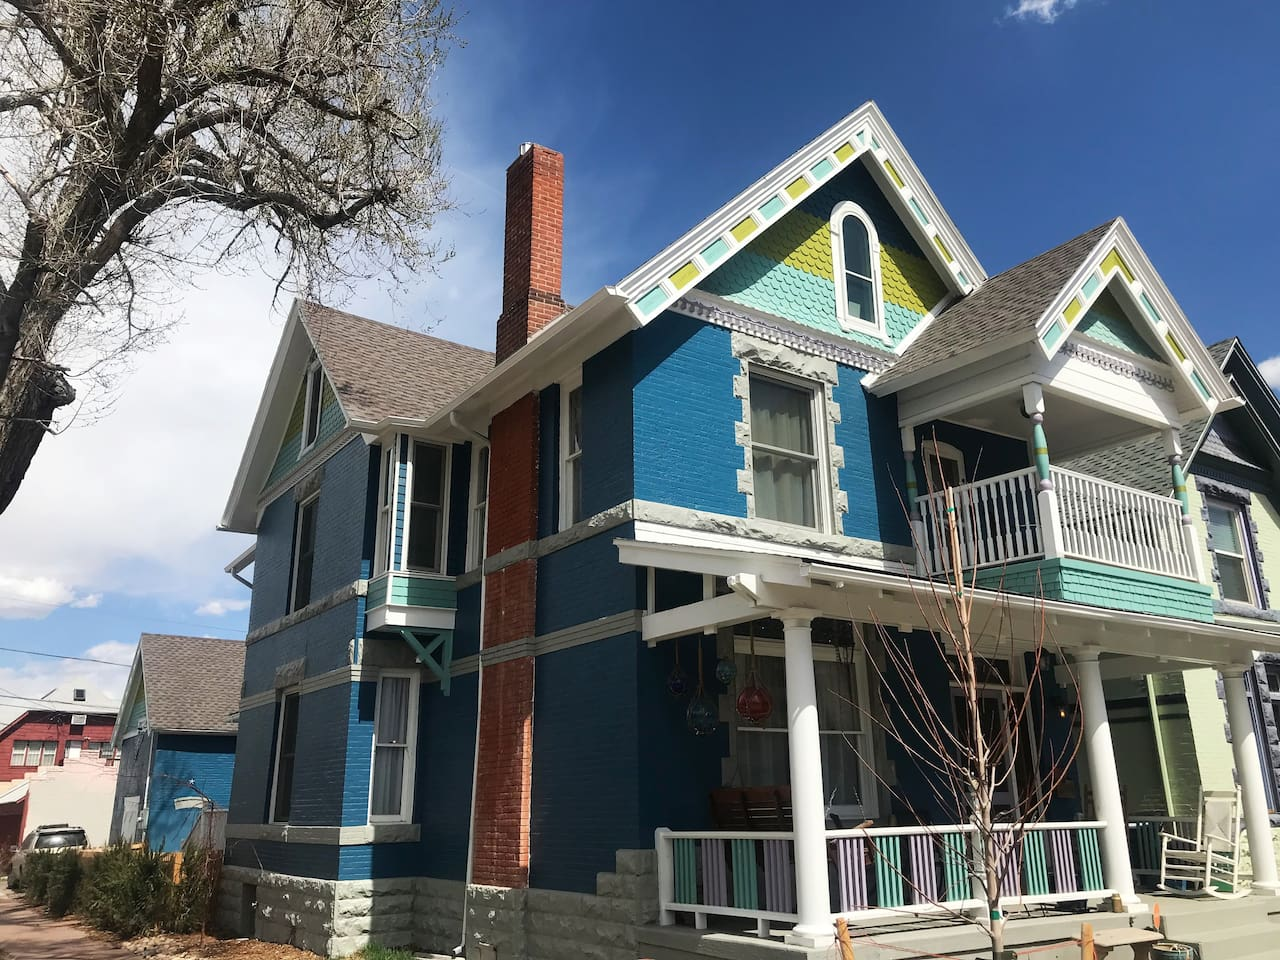 A lovingly restored historical landmark, 1890 Queen Anne, Founder of Elsy Studios Designer decorated.  Two blocks from Broadway bars and restaurants, 13 blocks from downtown Denver. 3 story home with 5 bedrooms, 4 bathrooms, 9 beds, sleeps 12.